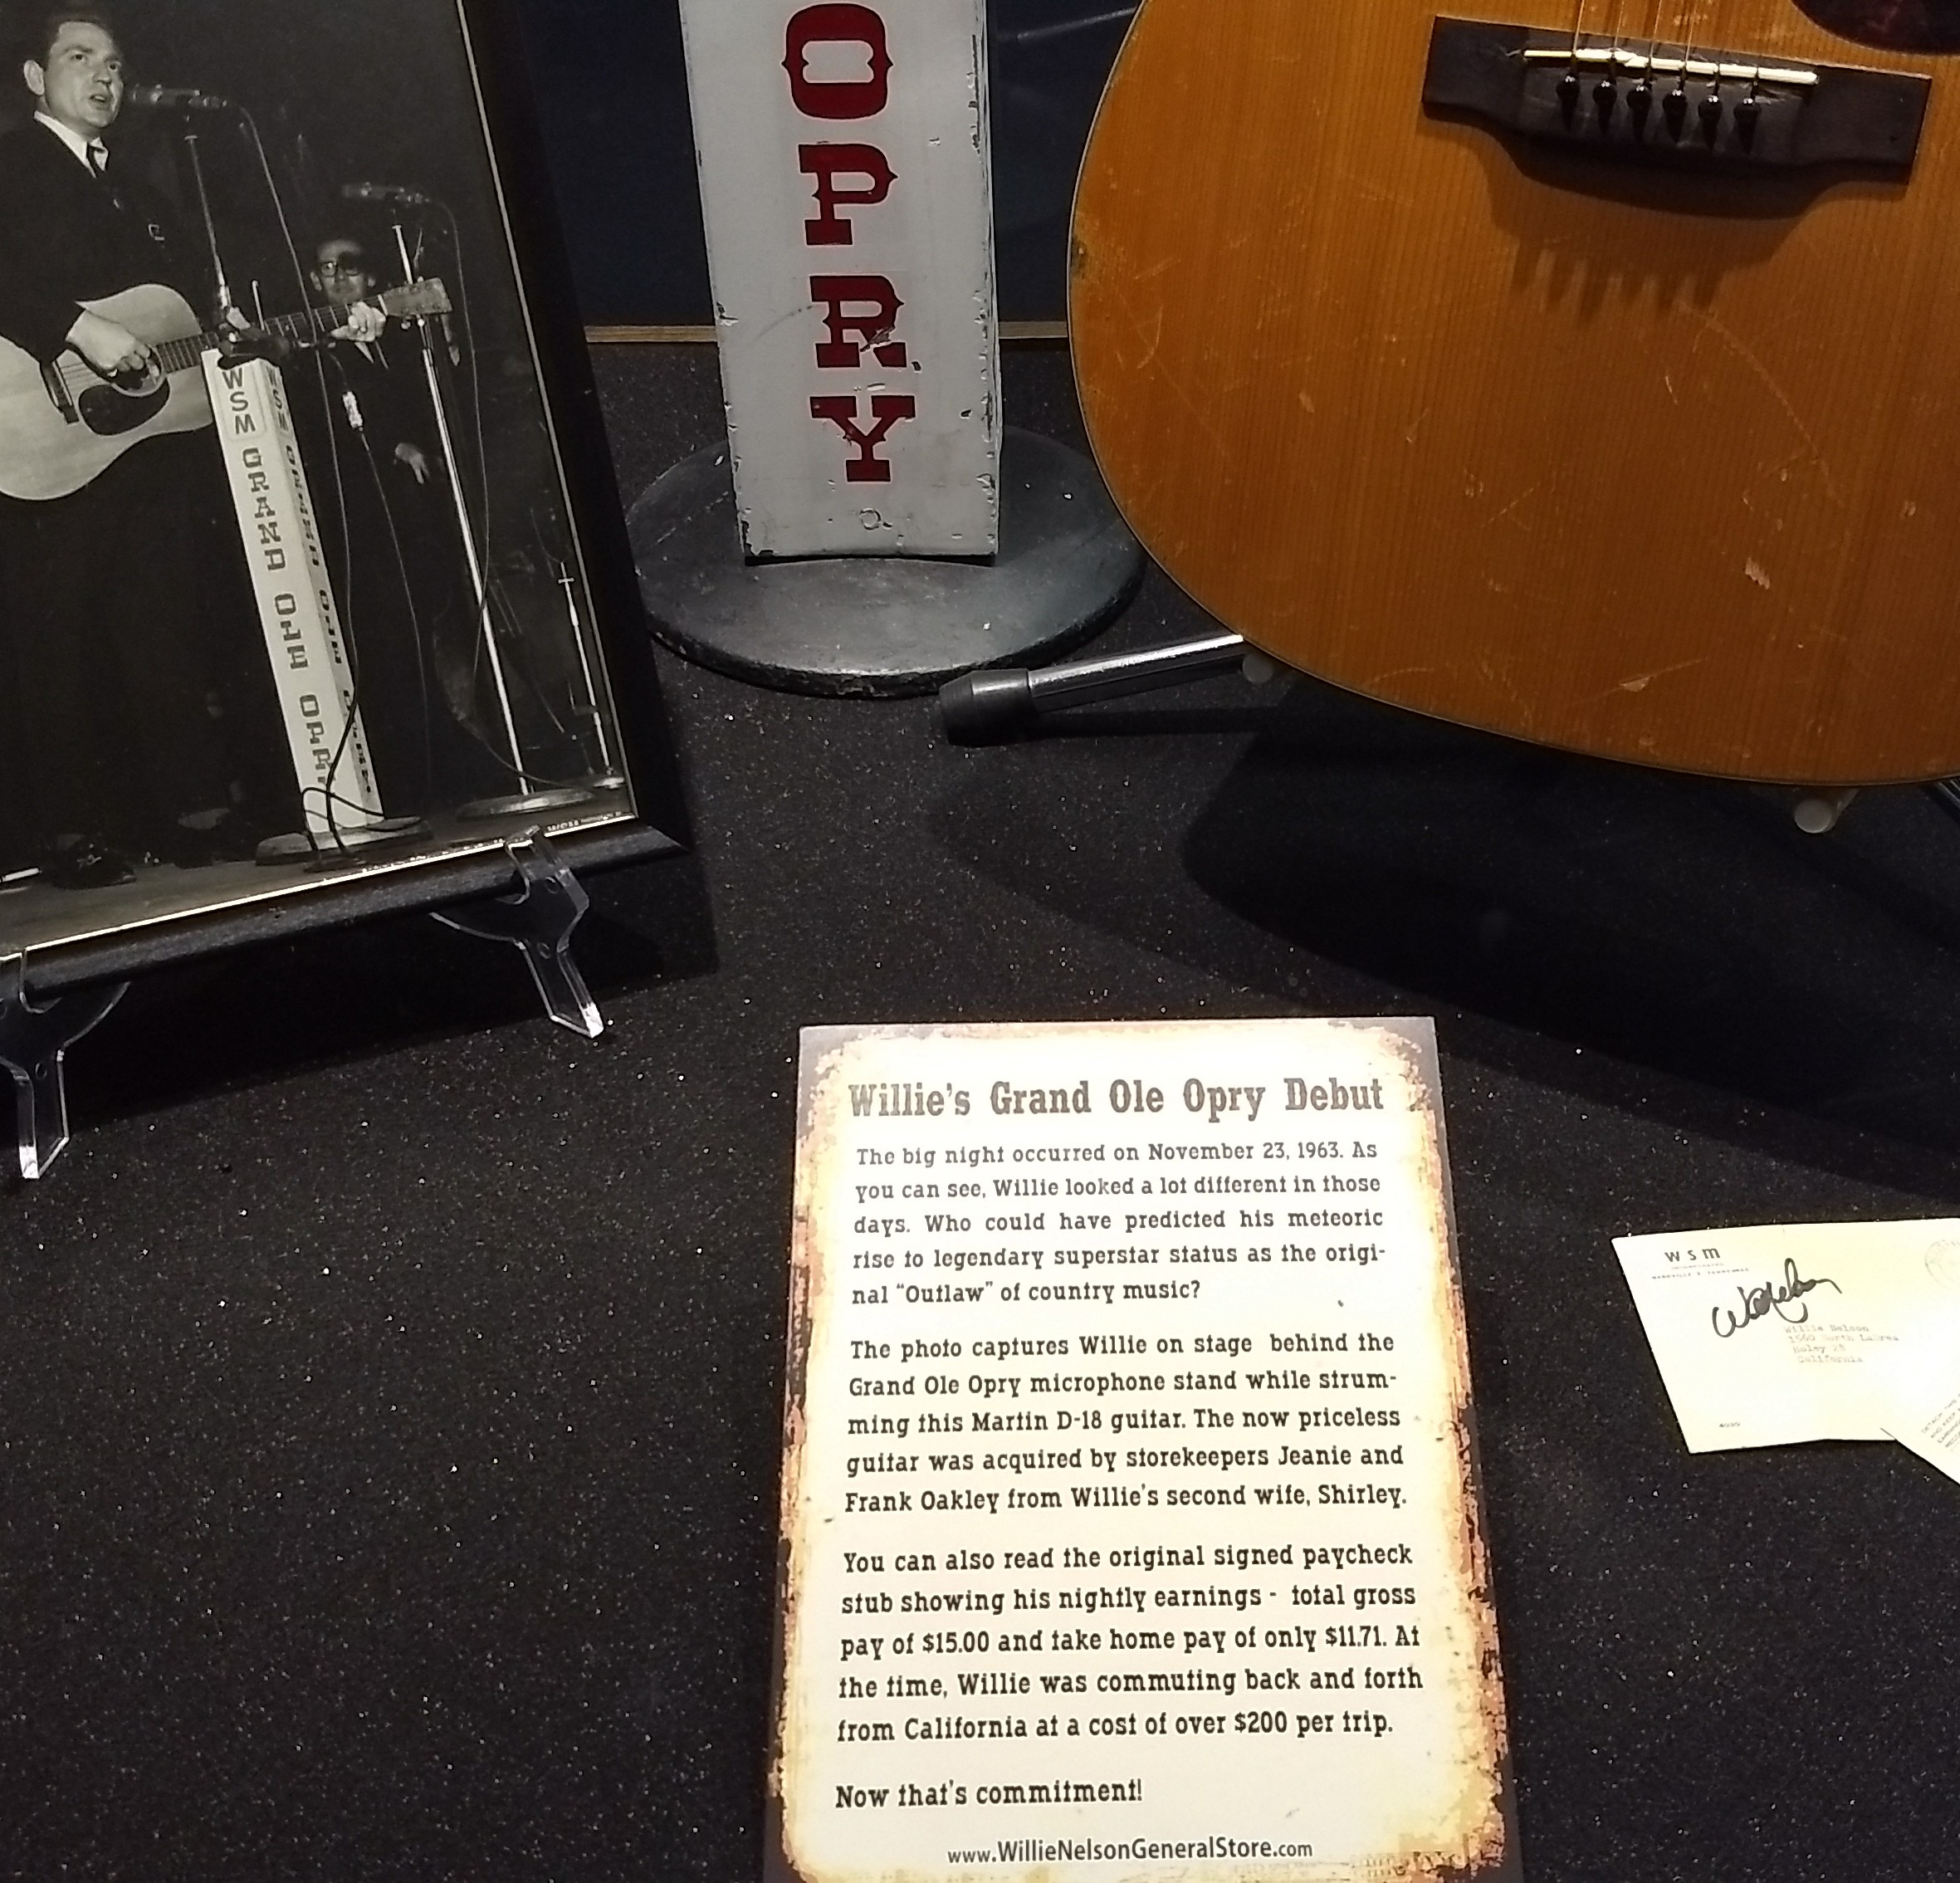 Willie Nelson's Opry debut